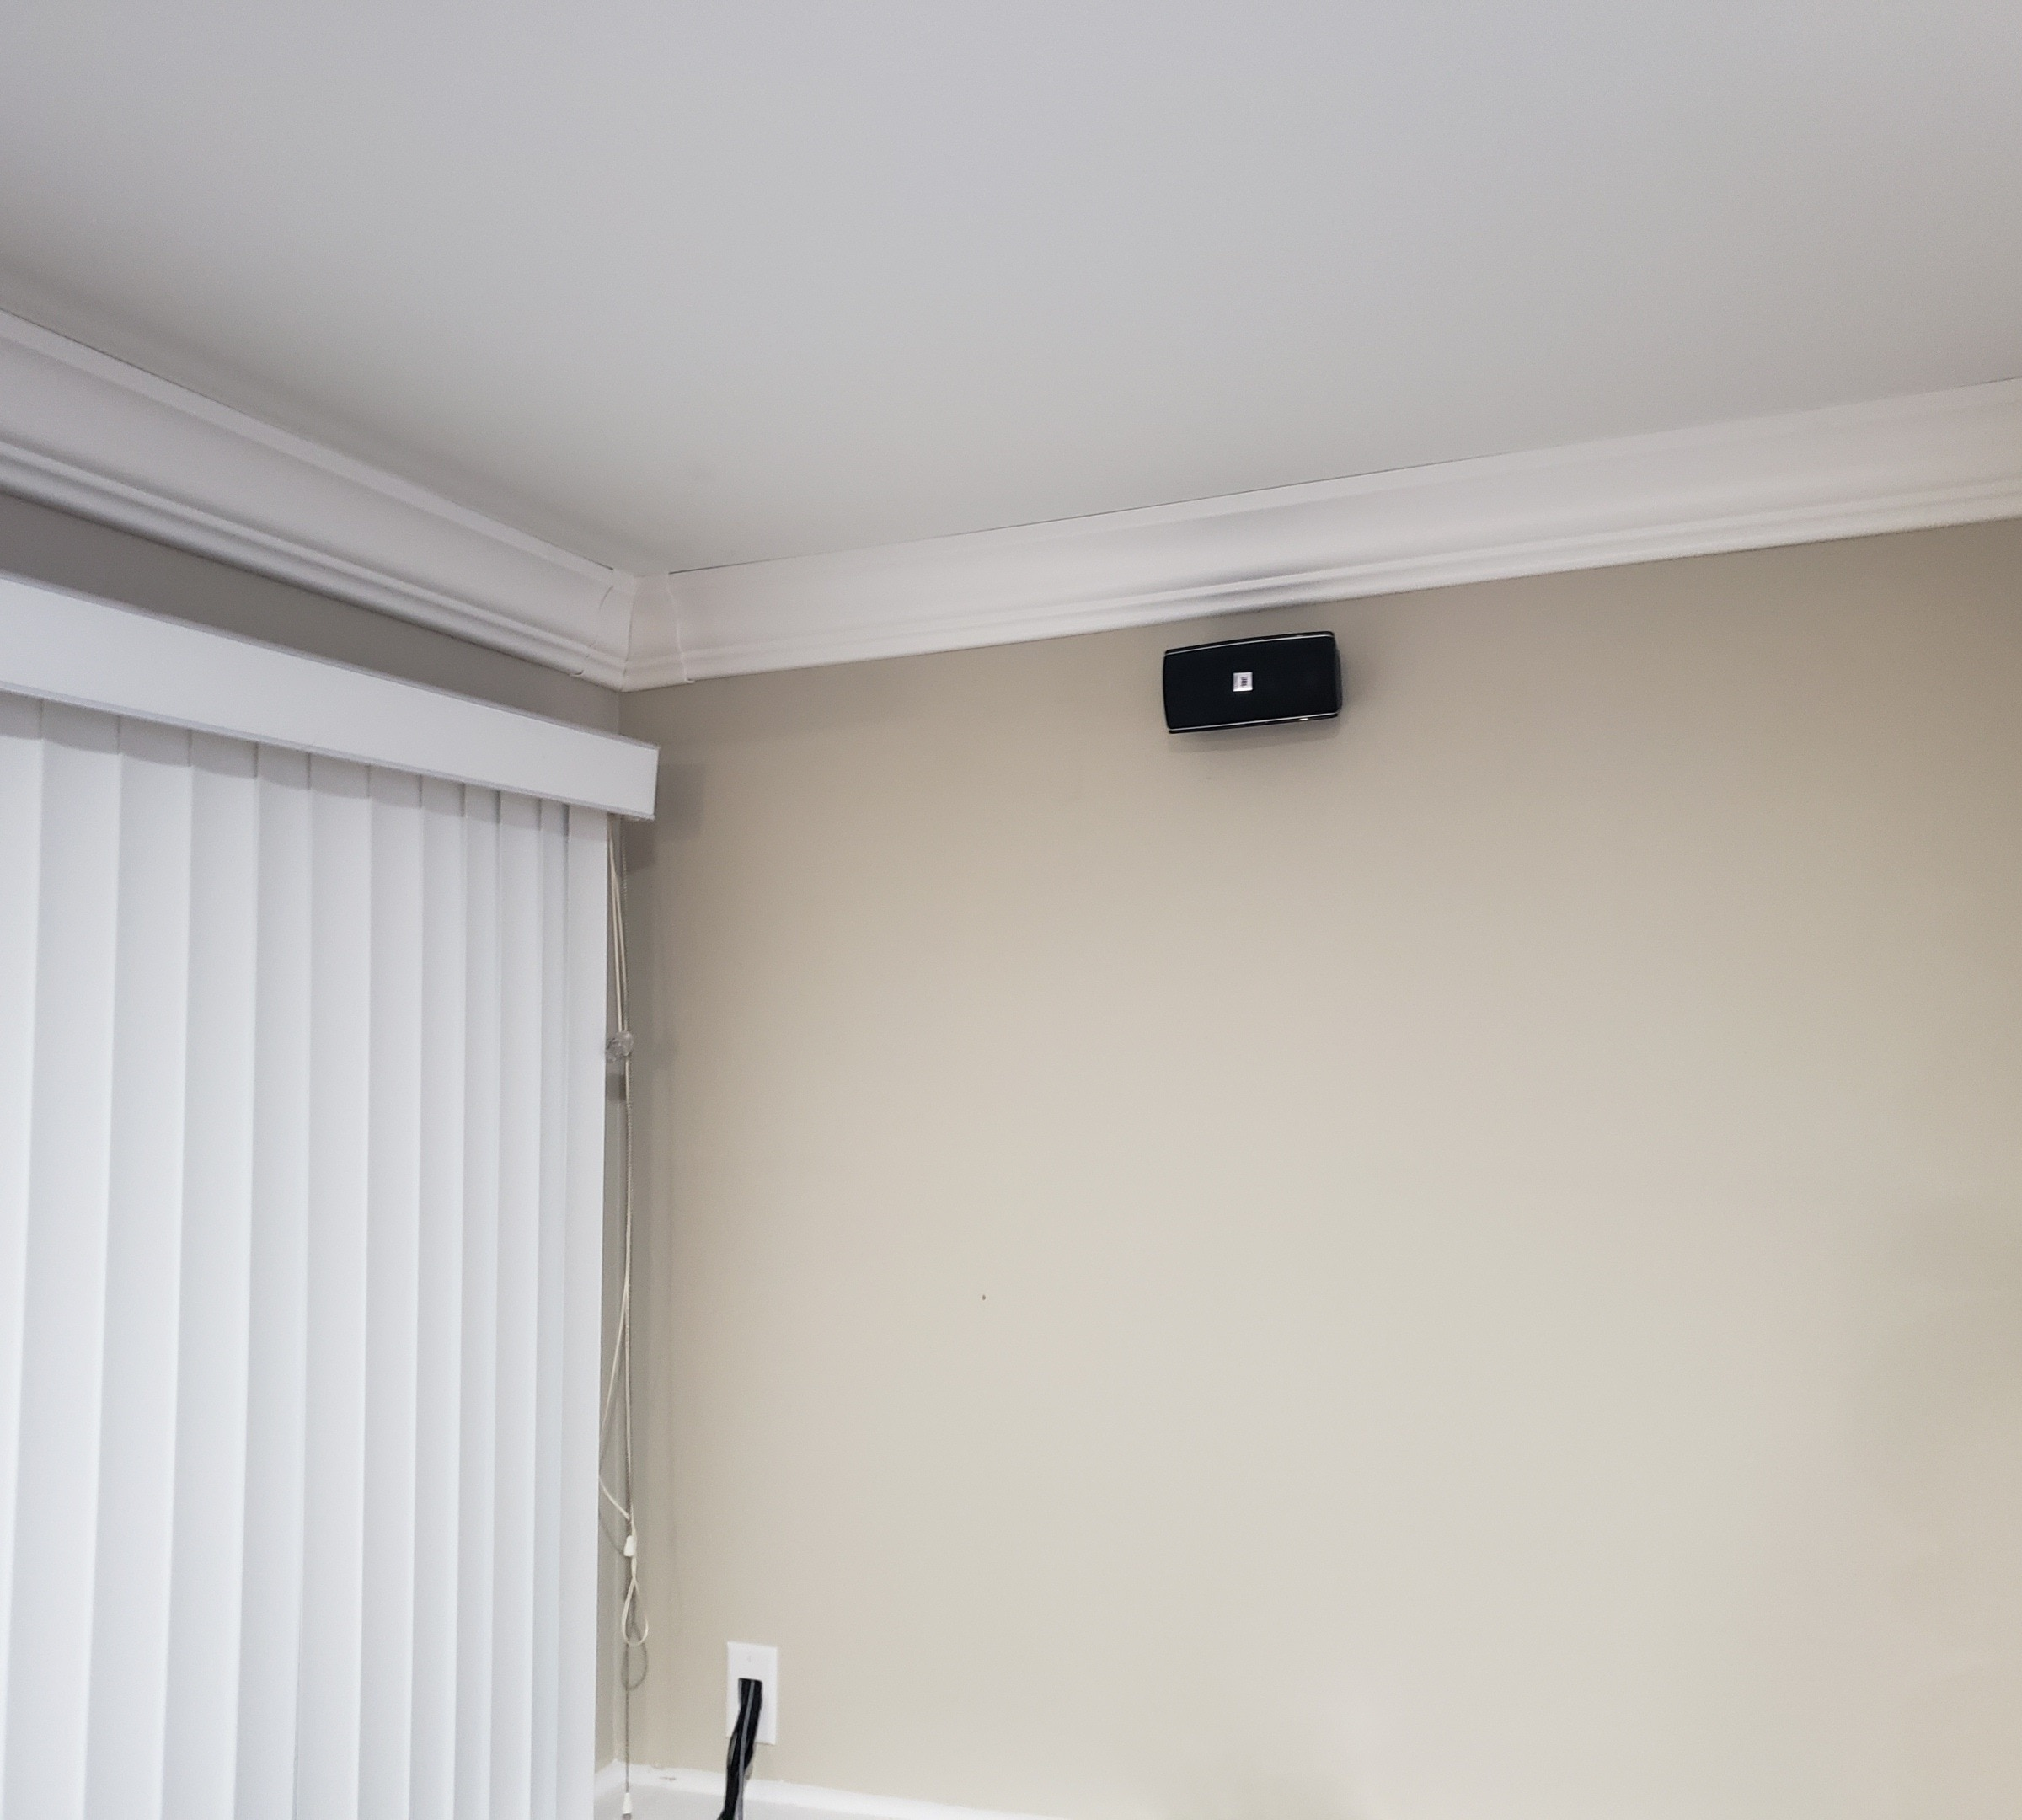 Home theater setup and wire concealment